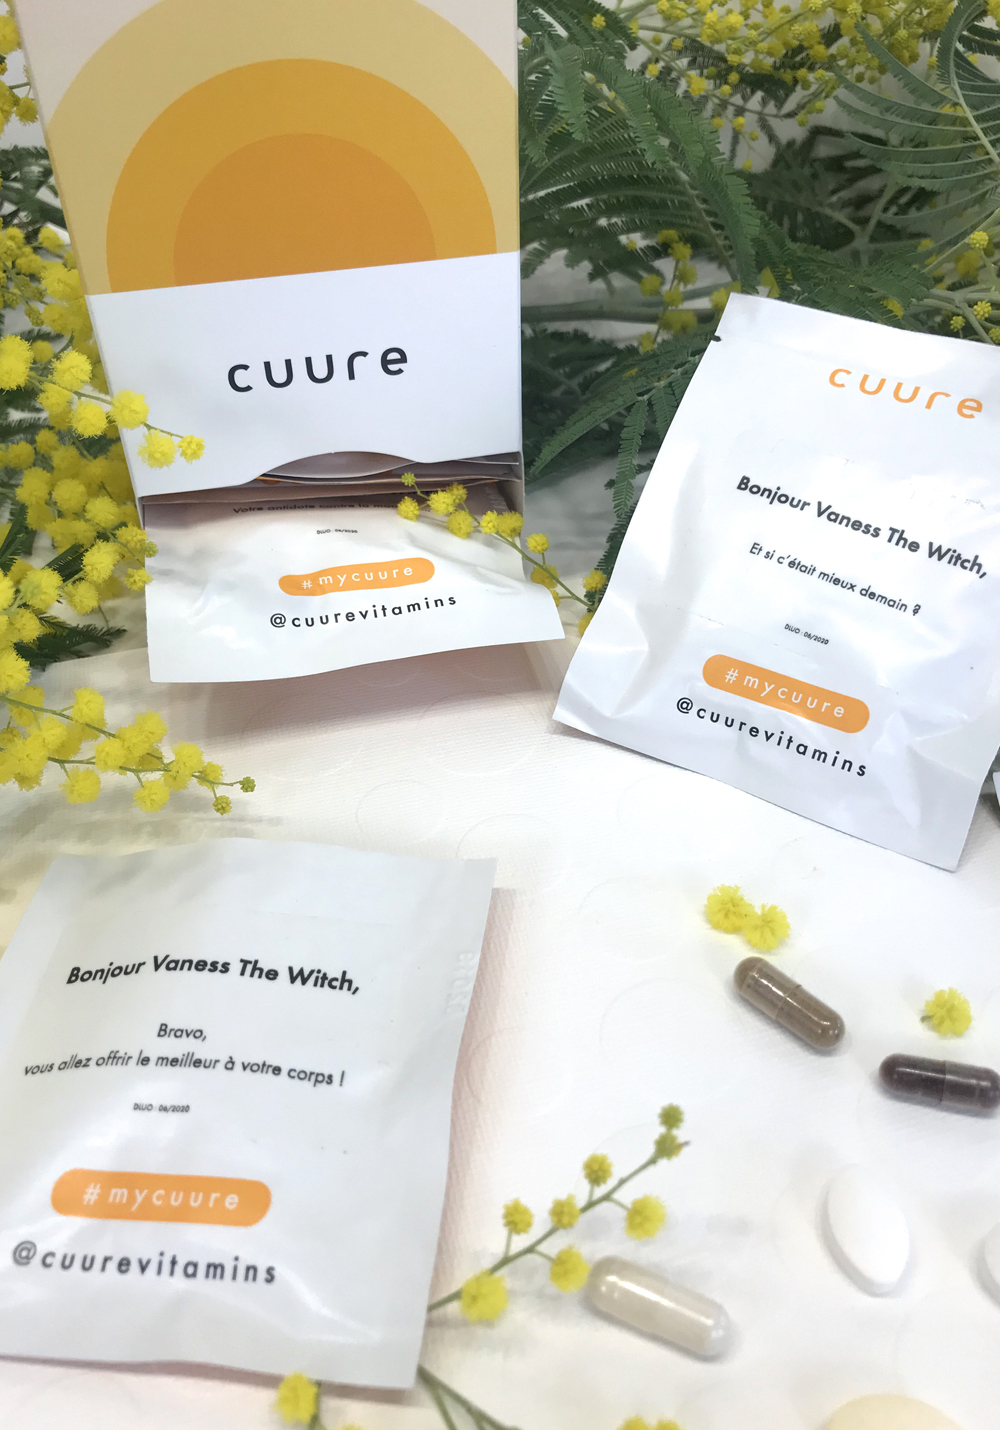 cuure complement alimentaire personnalise exochic